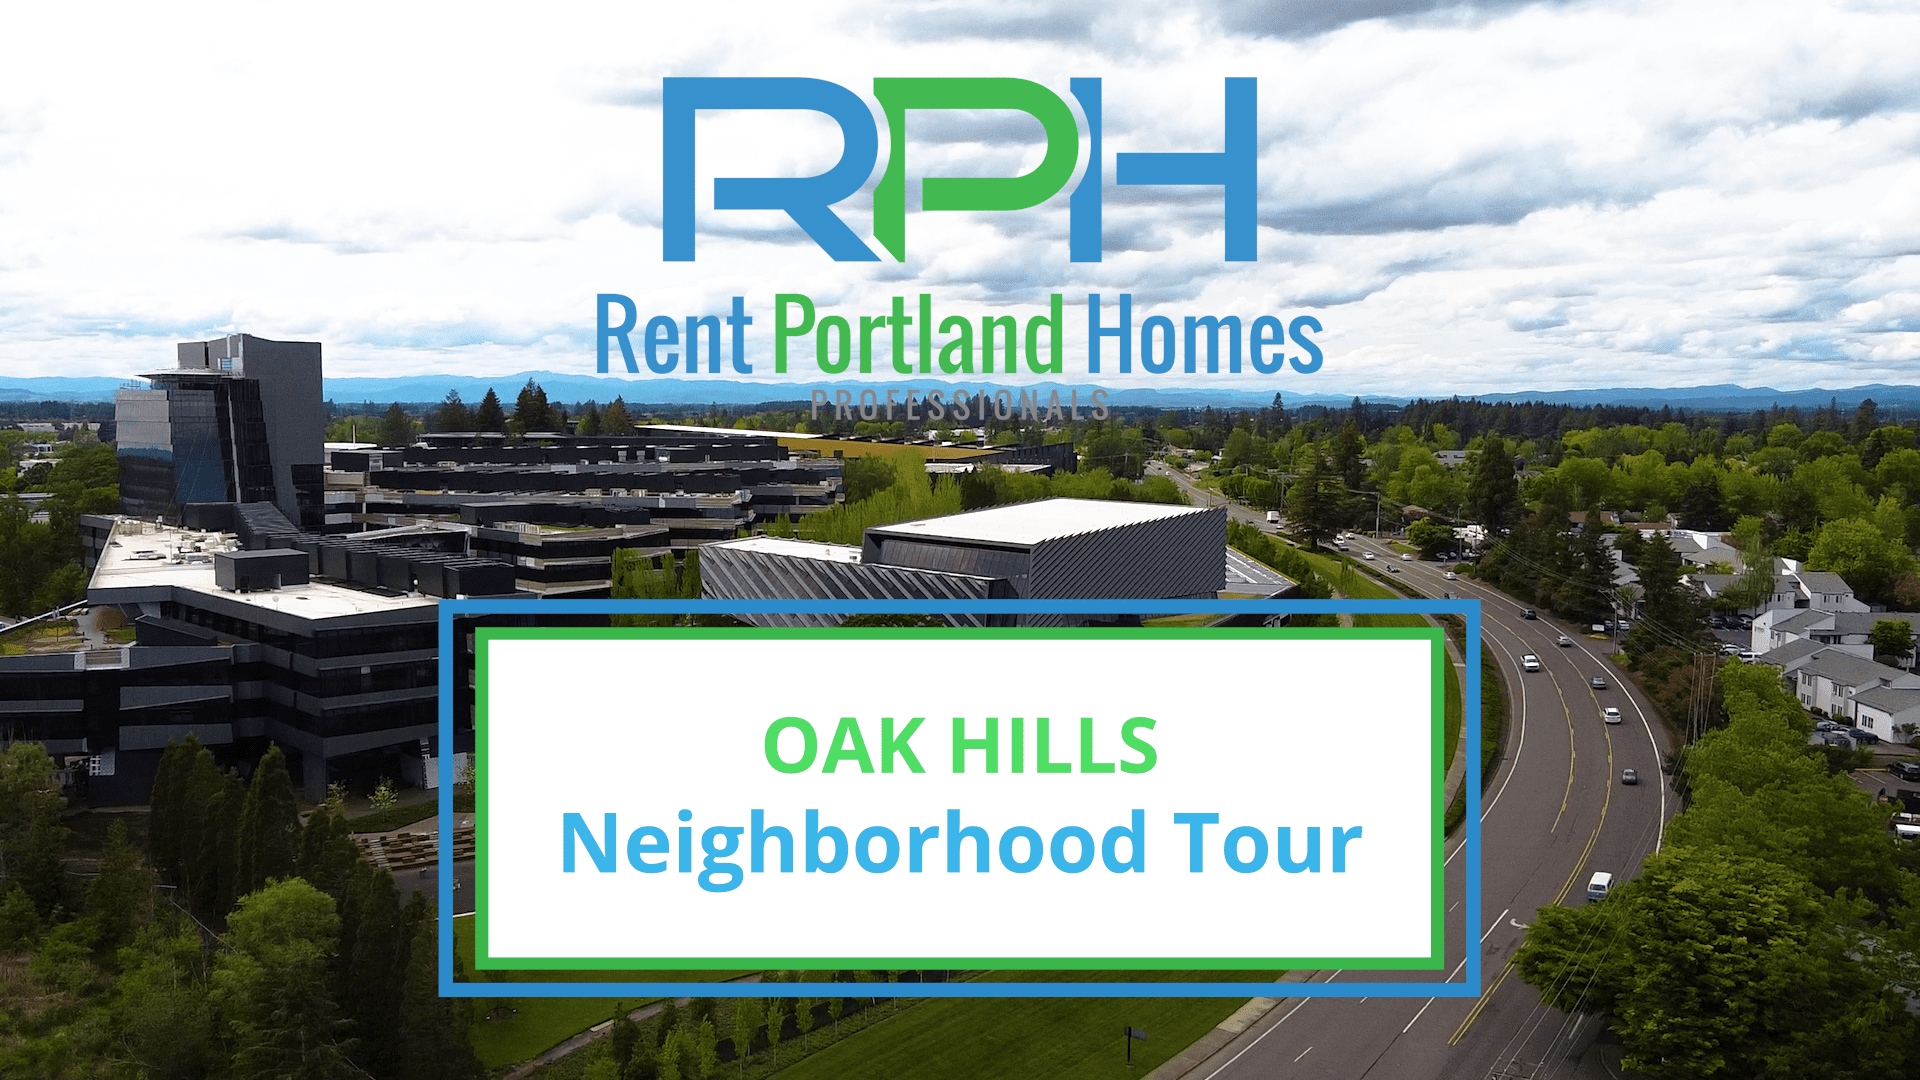 Oak Hills Neighborhood Tour